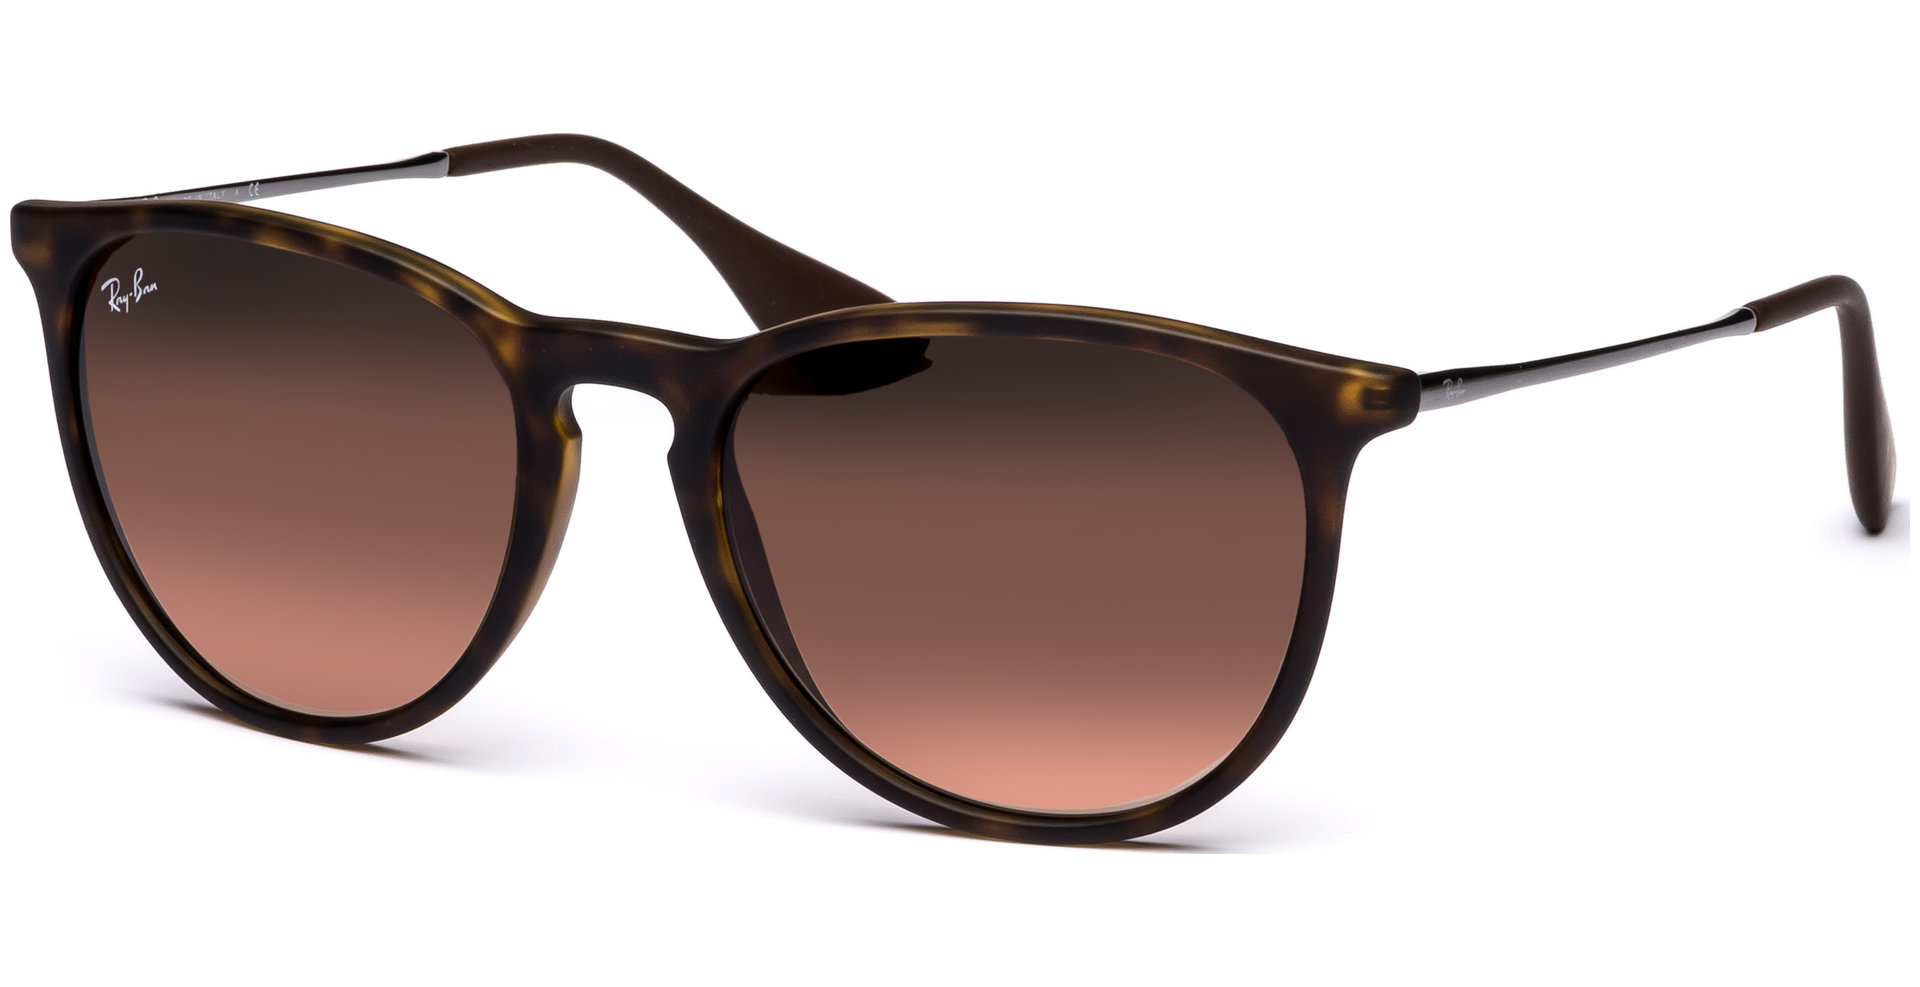 7a156cb48d Erika Black Ray Bans With Blue Gradient « Heritage Malta